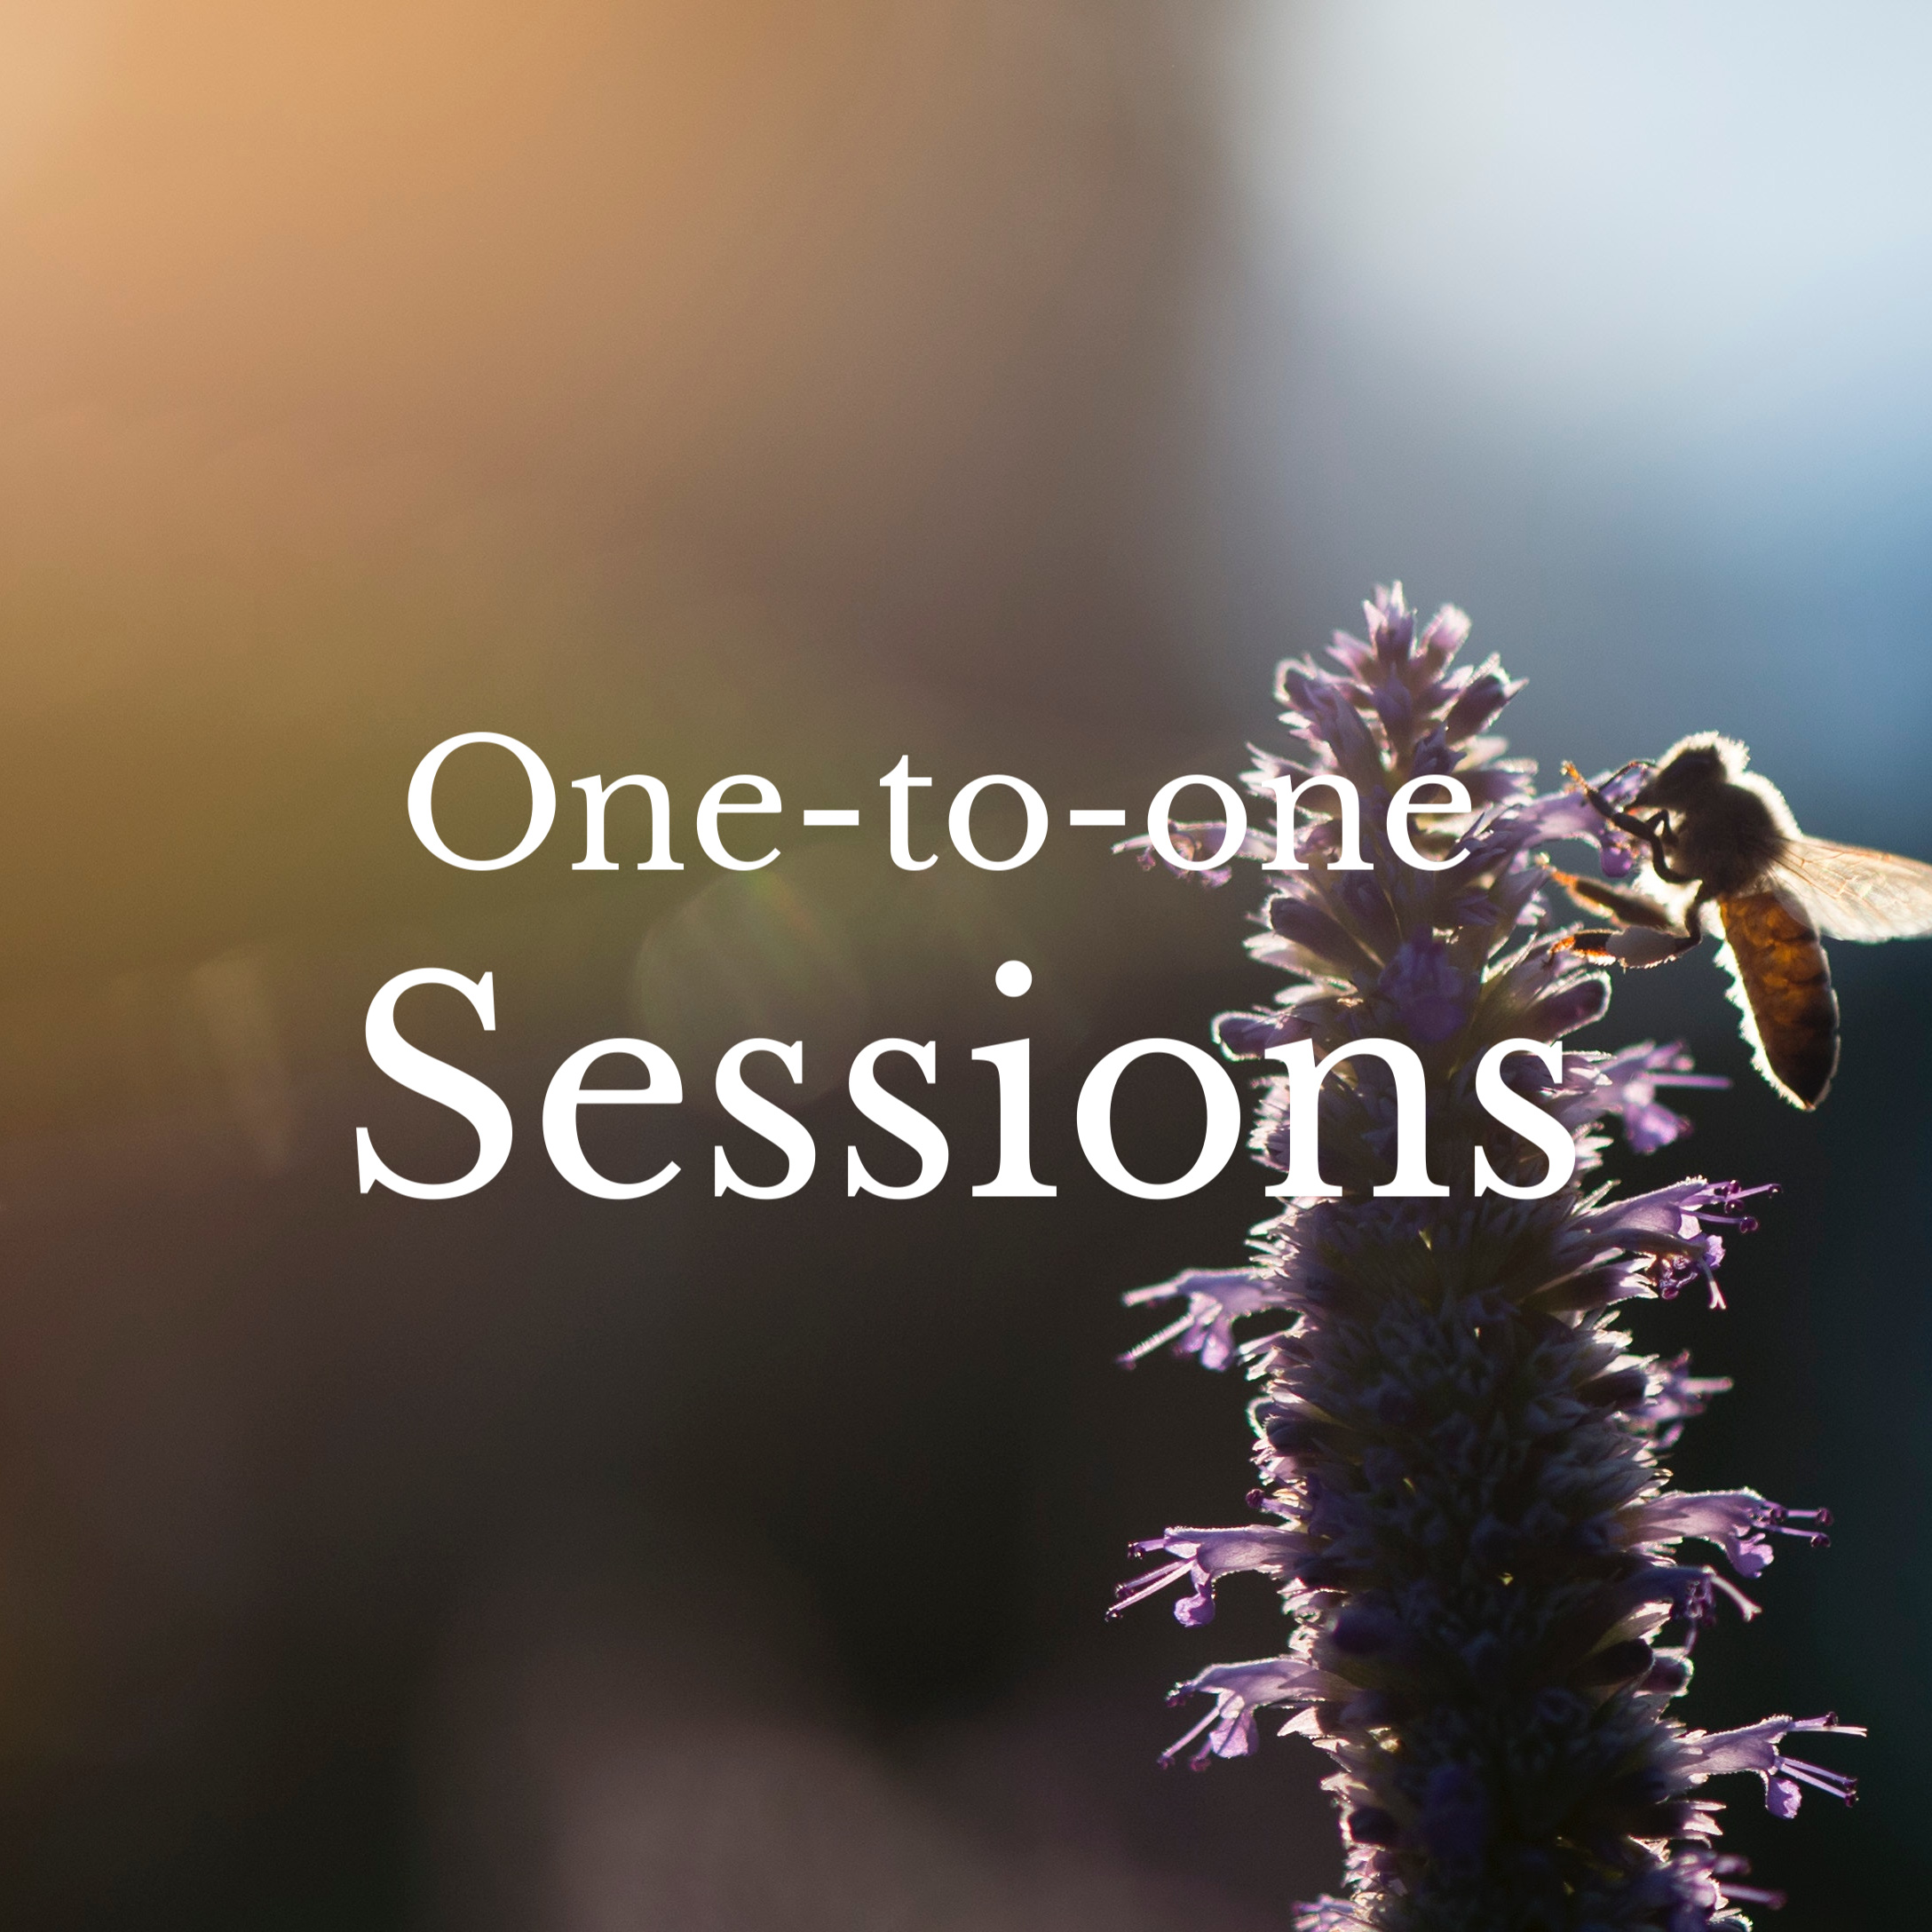 Sessions help you fill your energetic tool kit, check for energetic blind spots to help you stay in great energetic shape.  I recommend sessions every 4-6 weeks. Offered at my office and over zoom video.